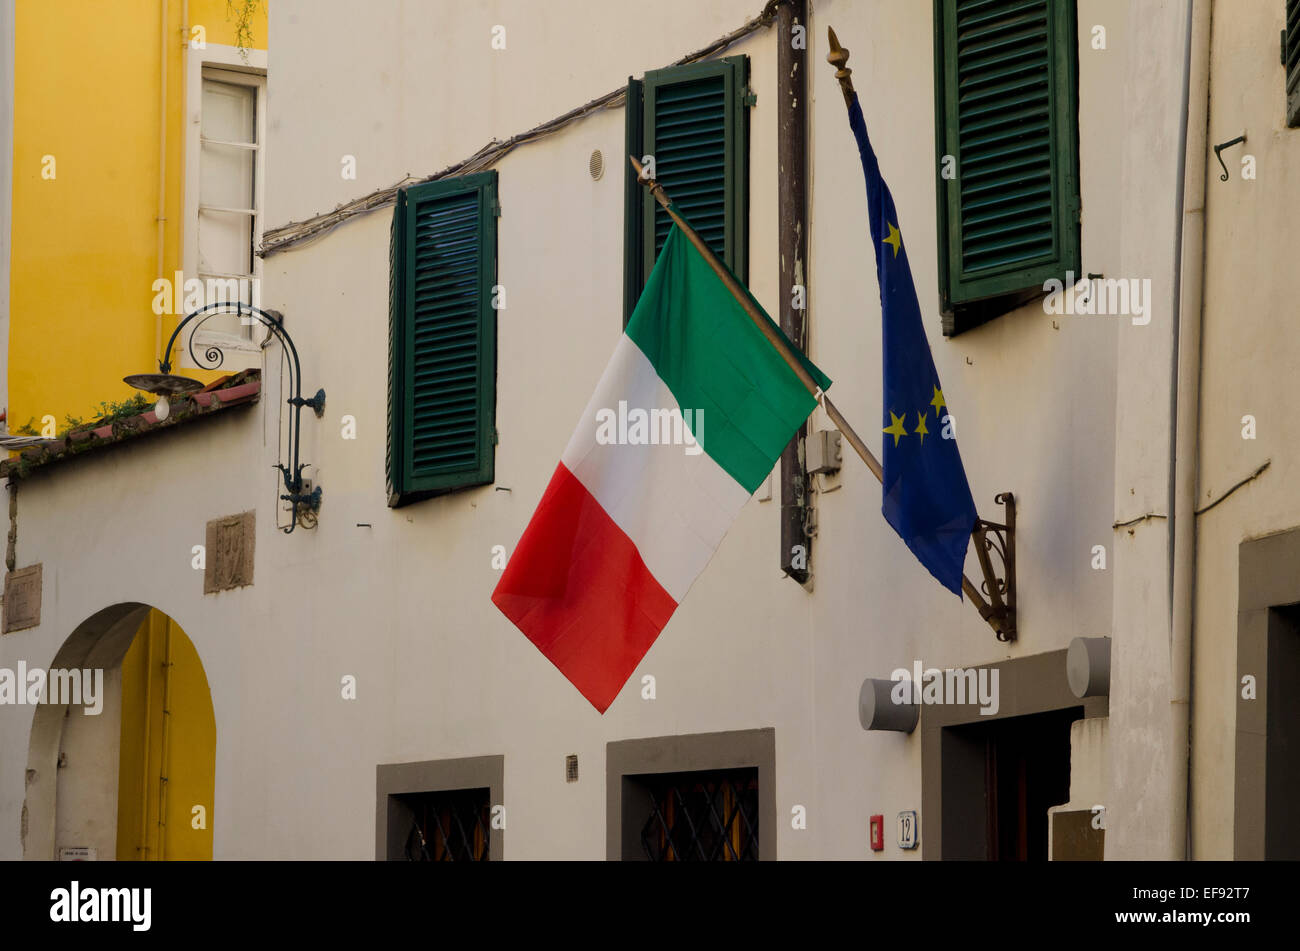 Italian and European Union flags on a building in Lucca, Tuscany, Italy - Stock Image